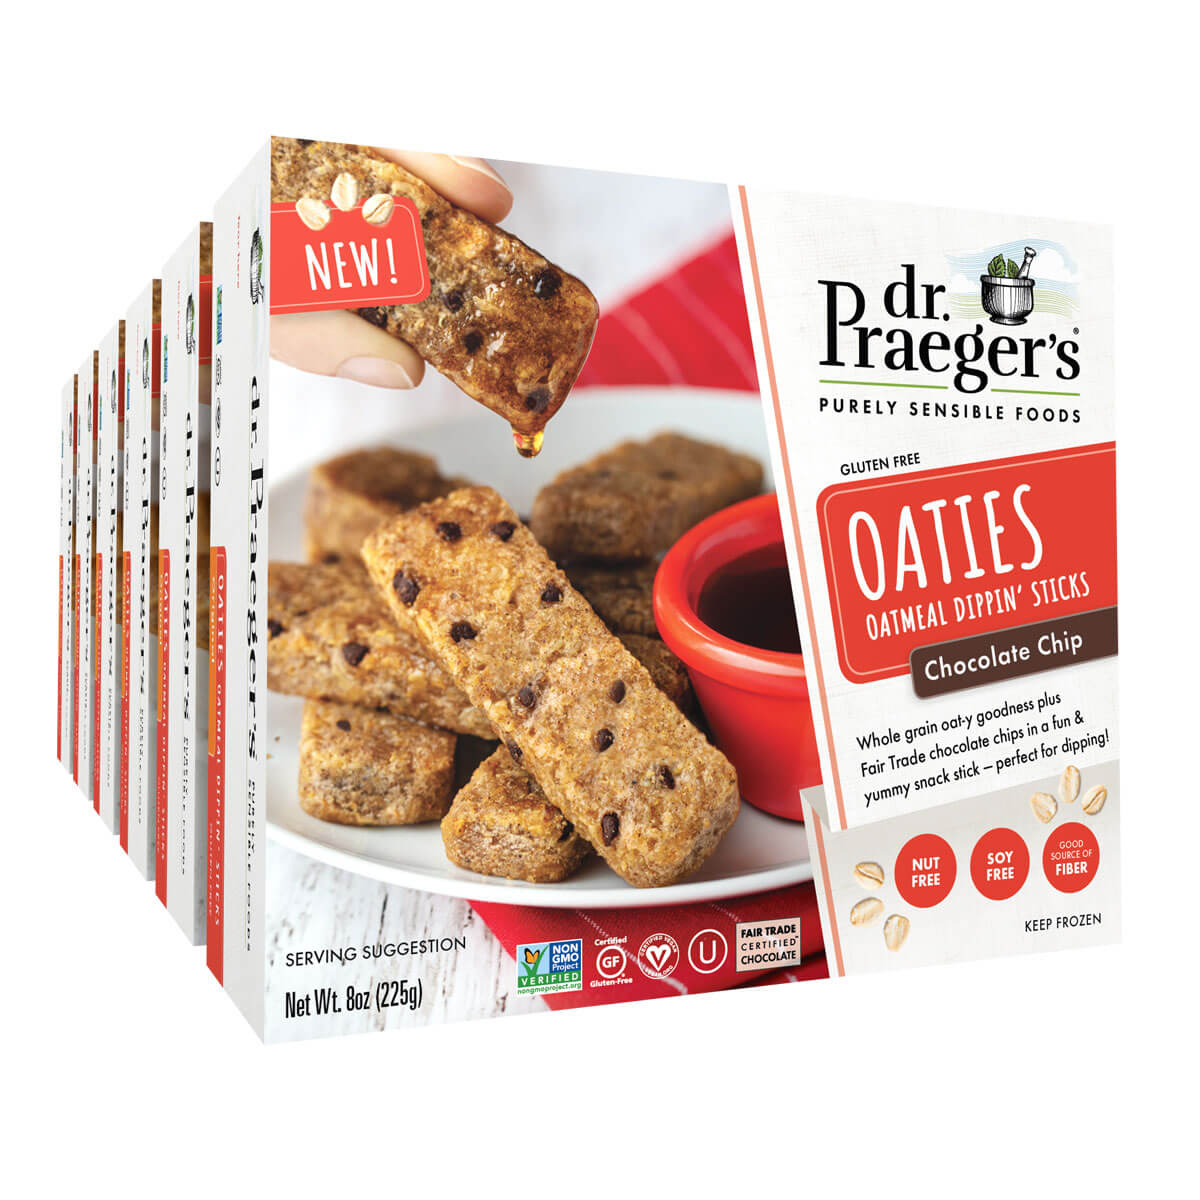 Dr. Praeger's Chocolate Chip Oaties 6 Box Image